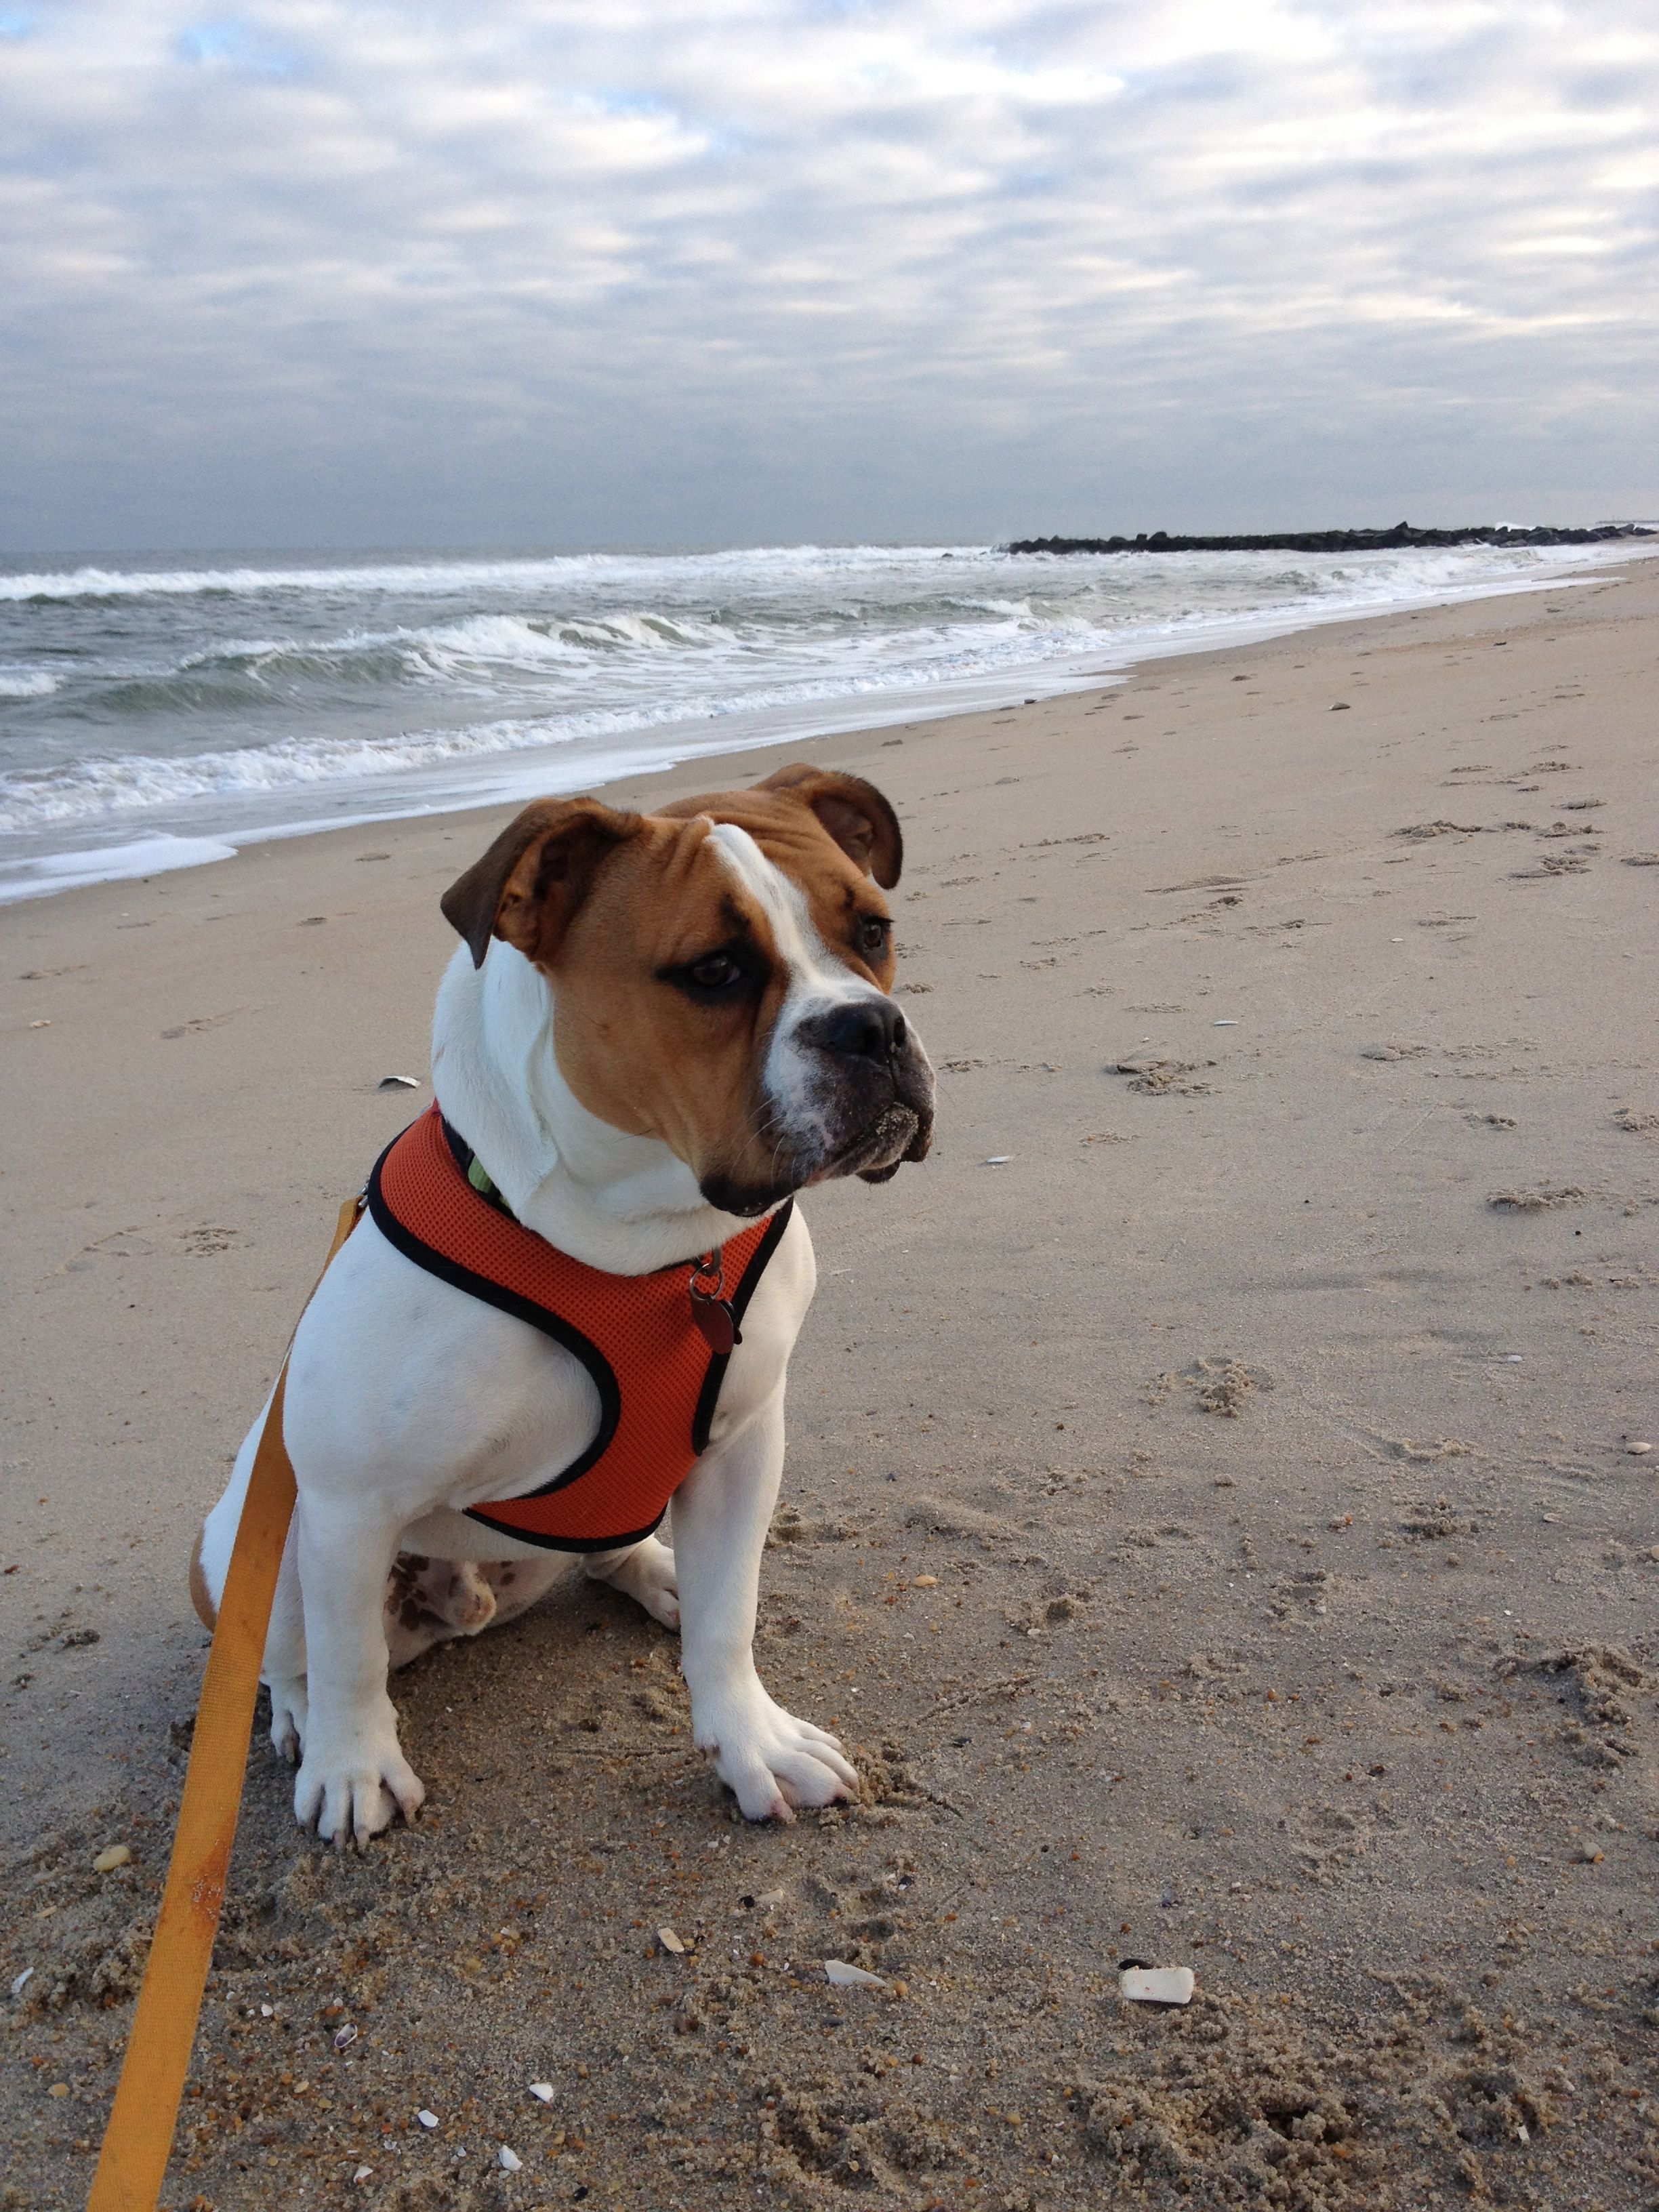 Murphy Mcdudley At 9 Months Old In Sea Girt Nj We Think He May